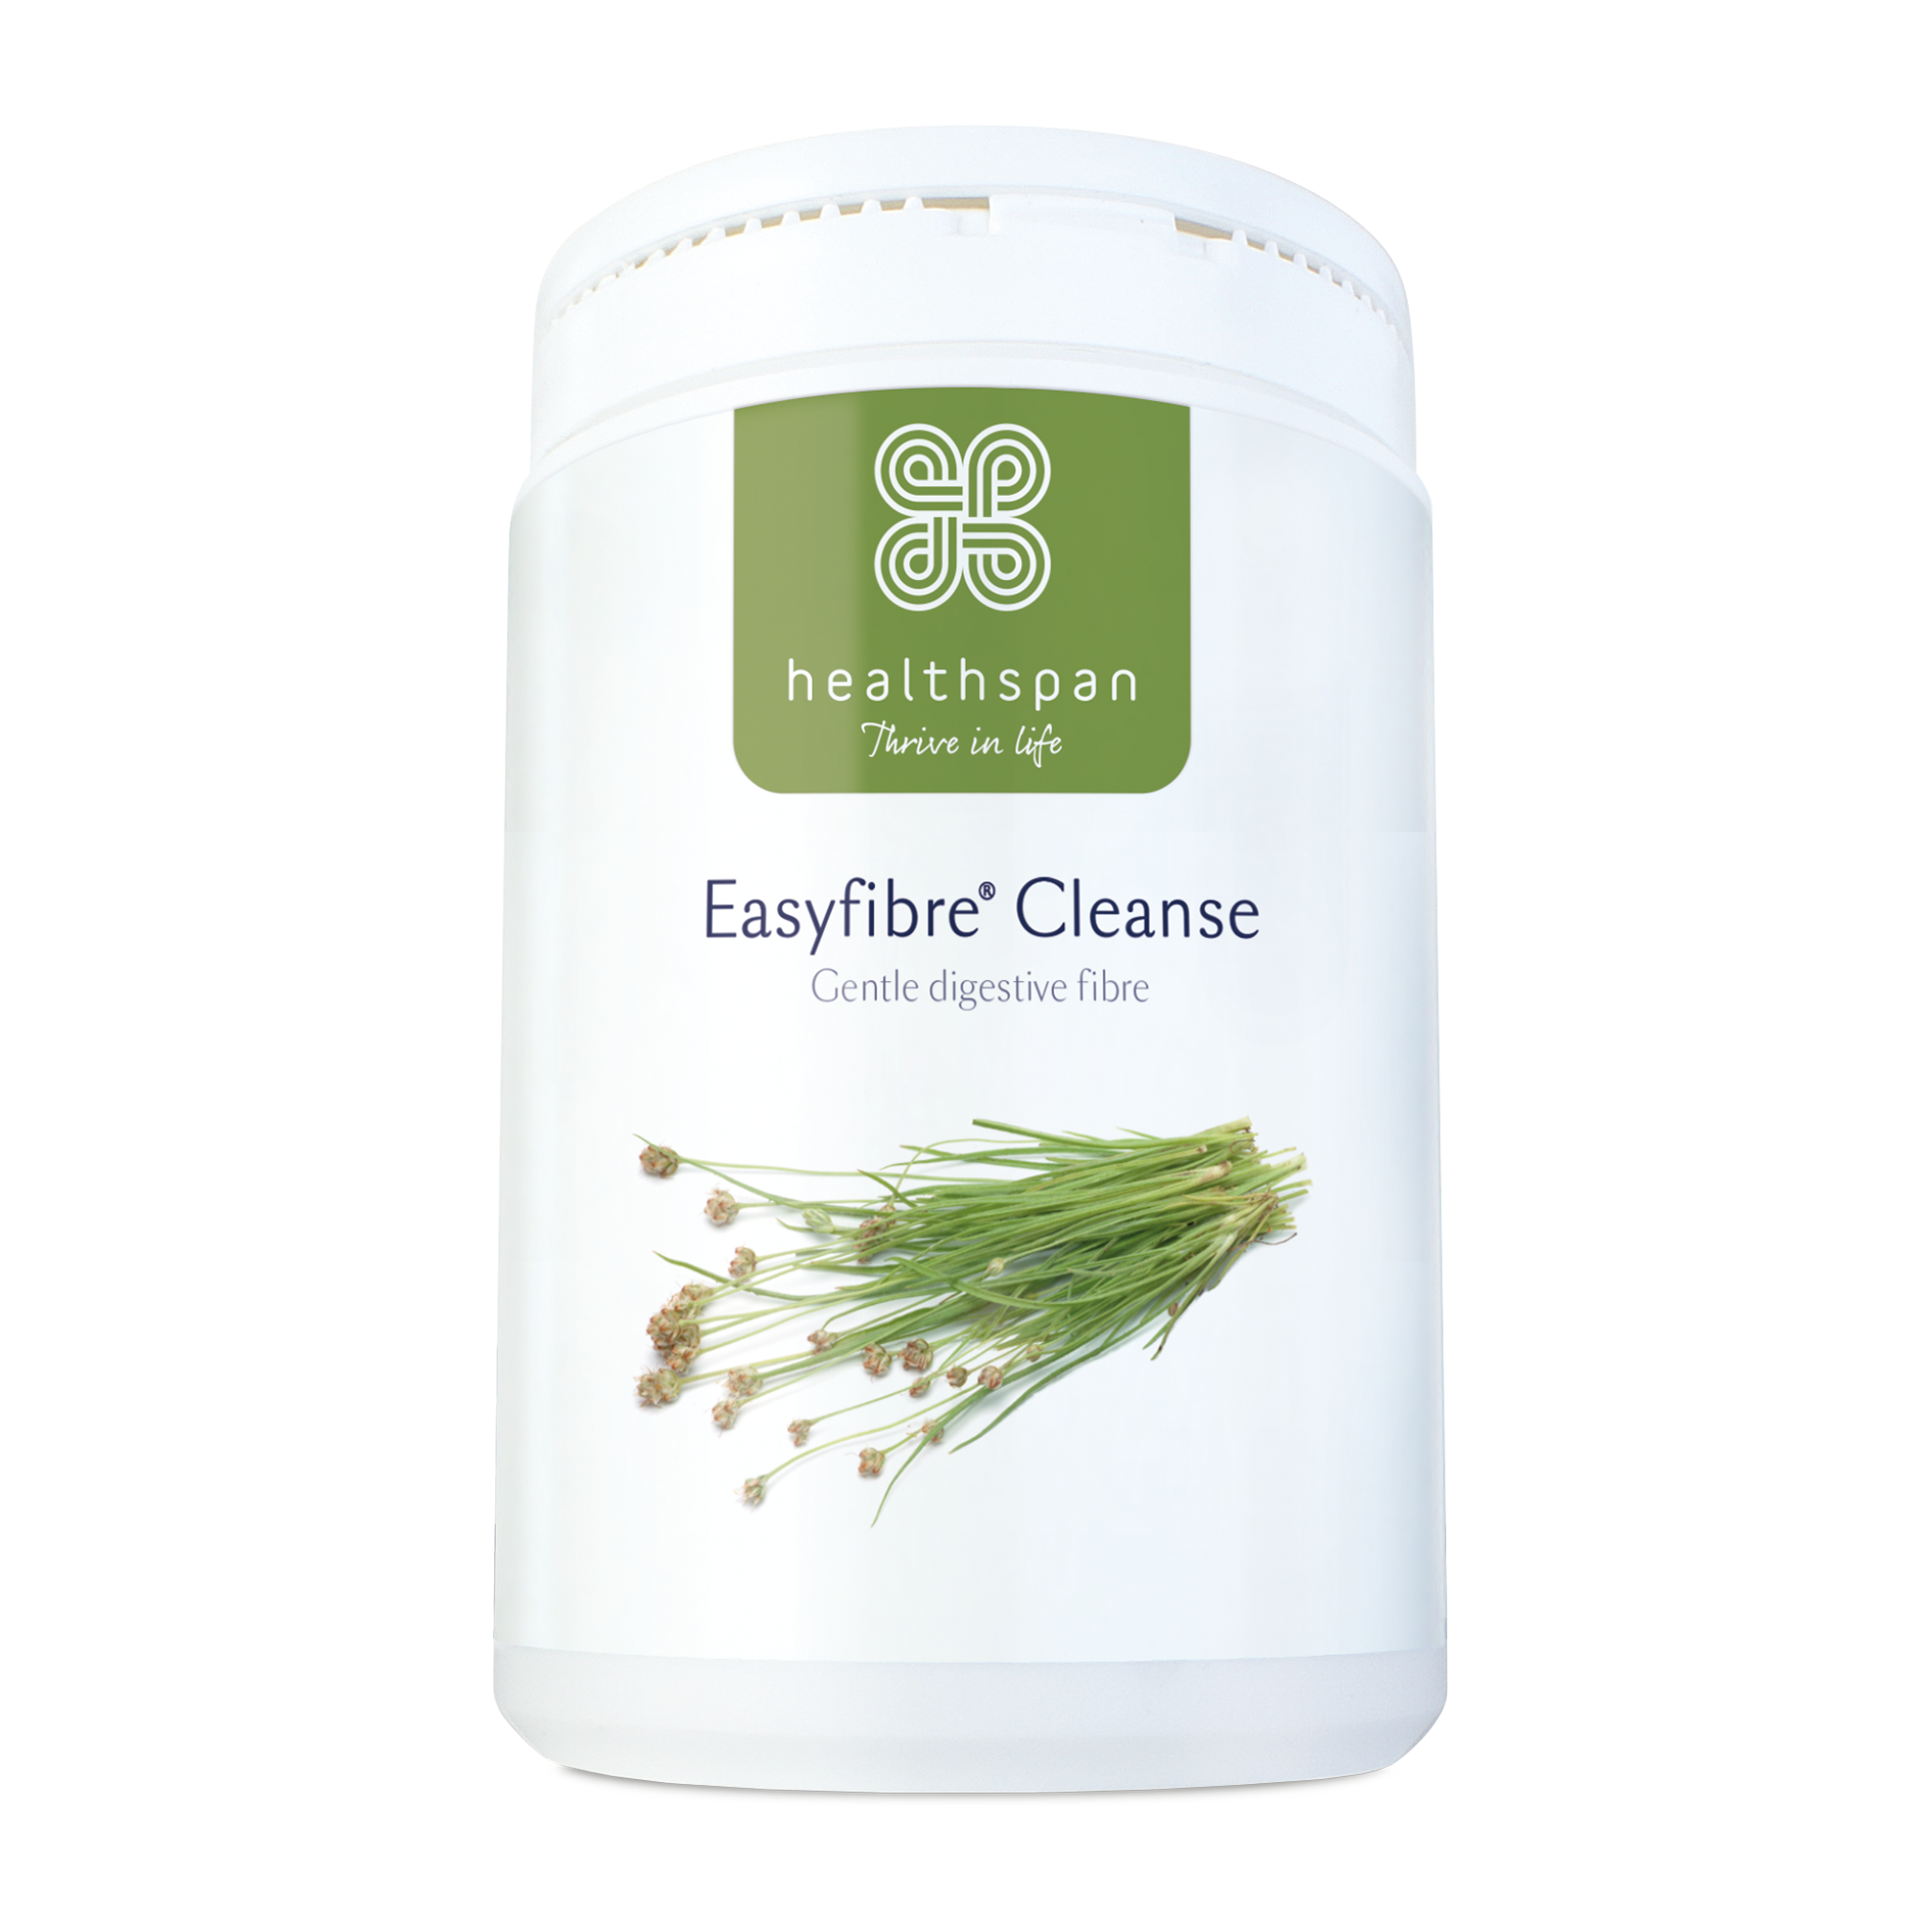 Easyfibre Cleanse Tub